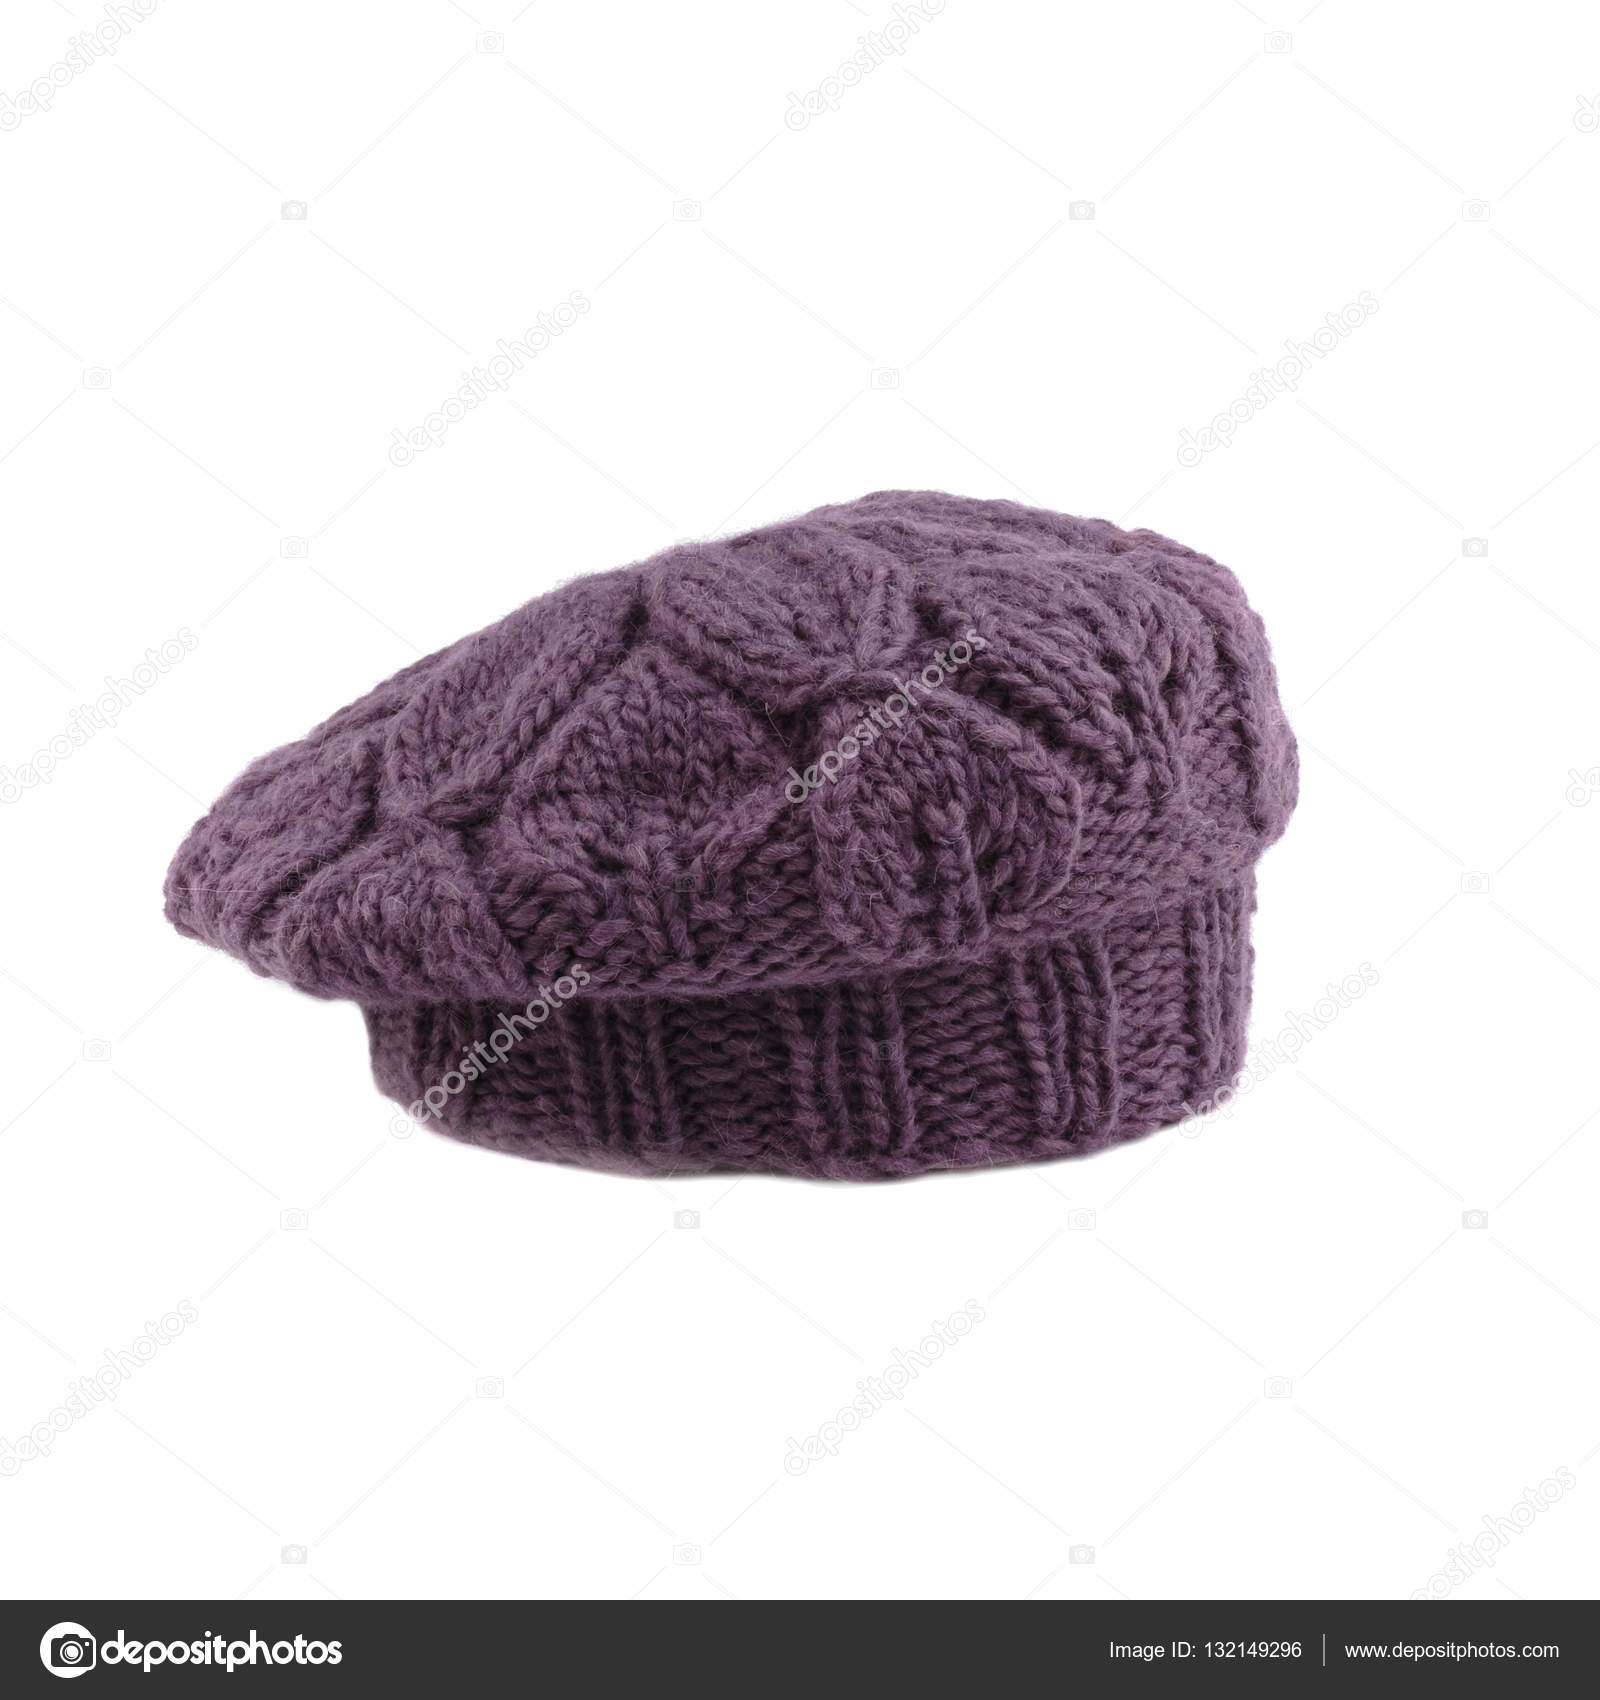 b2fbcc8b064 violette french beret — Stock Photo © apeyron  132149296